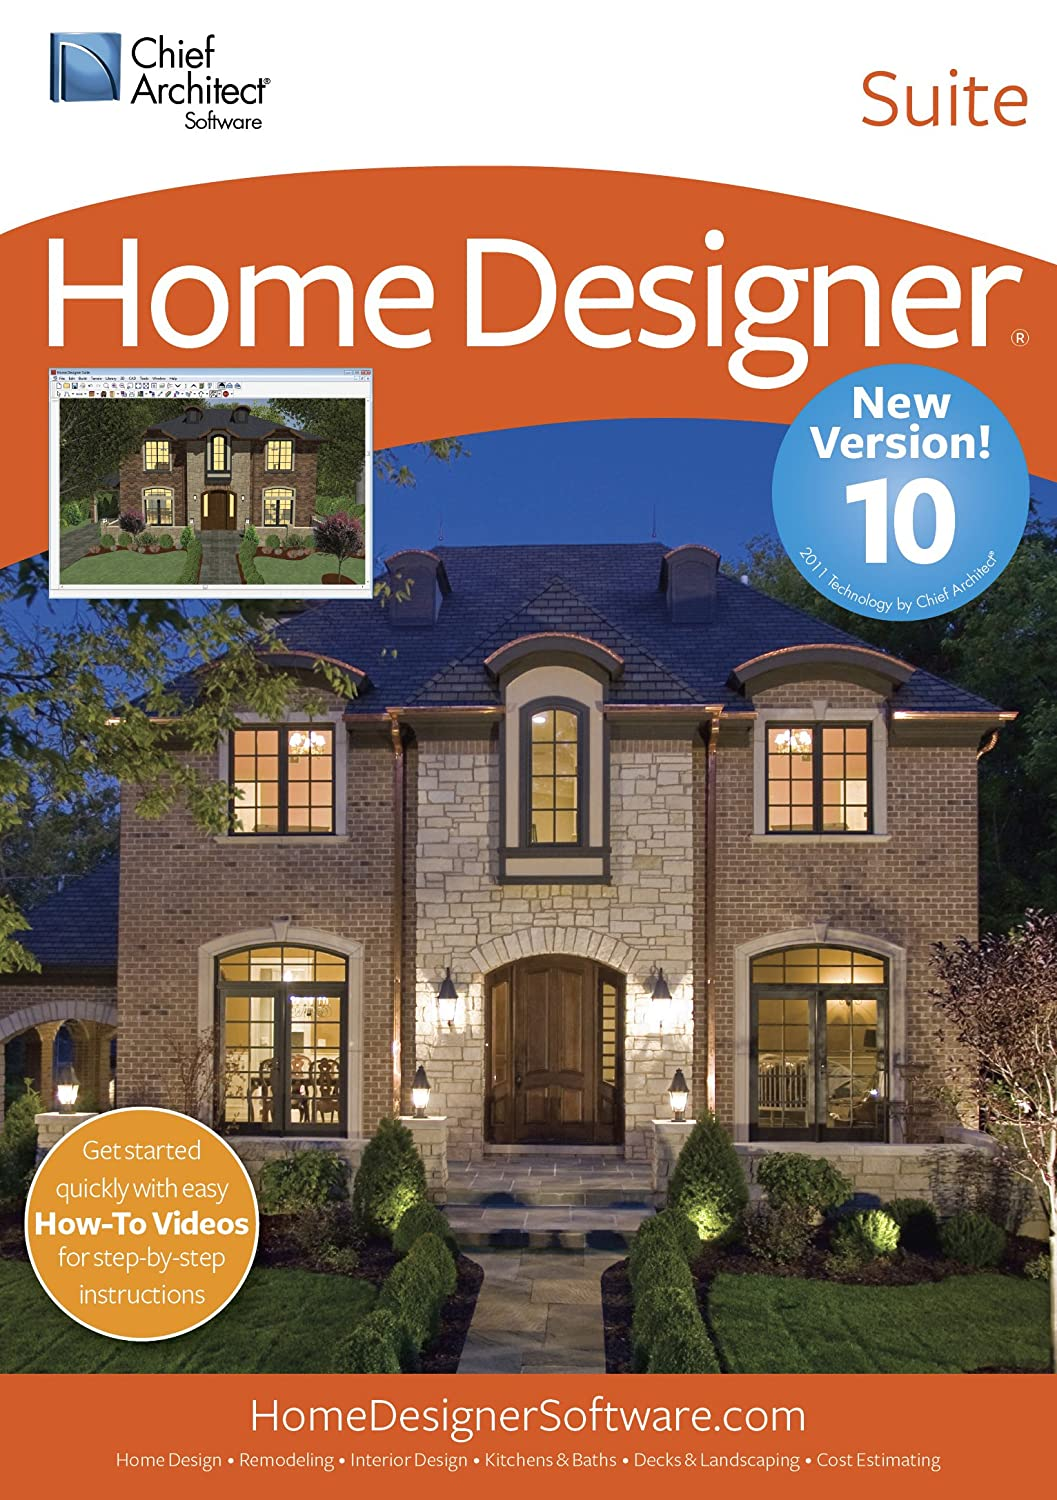 Amazon.com: Chief Architect Home Designer Suite 10 [Download]: Software